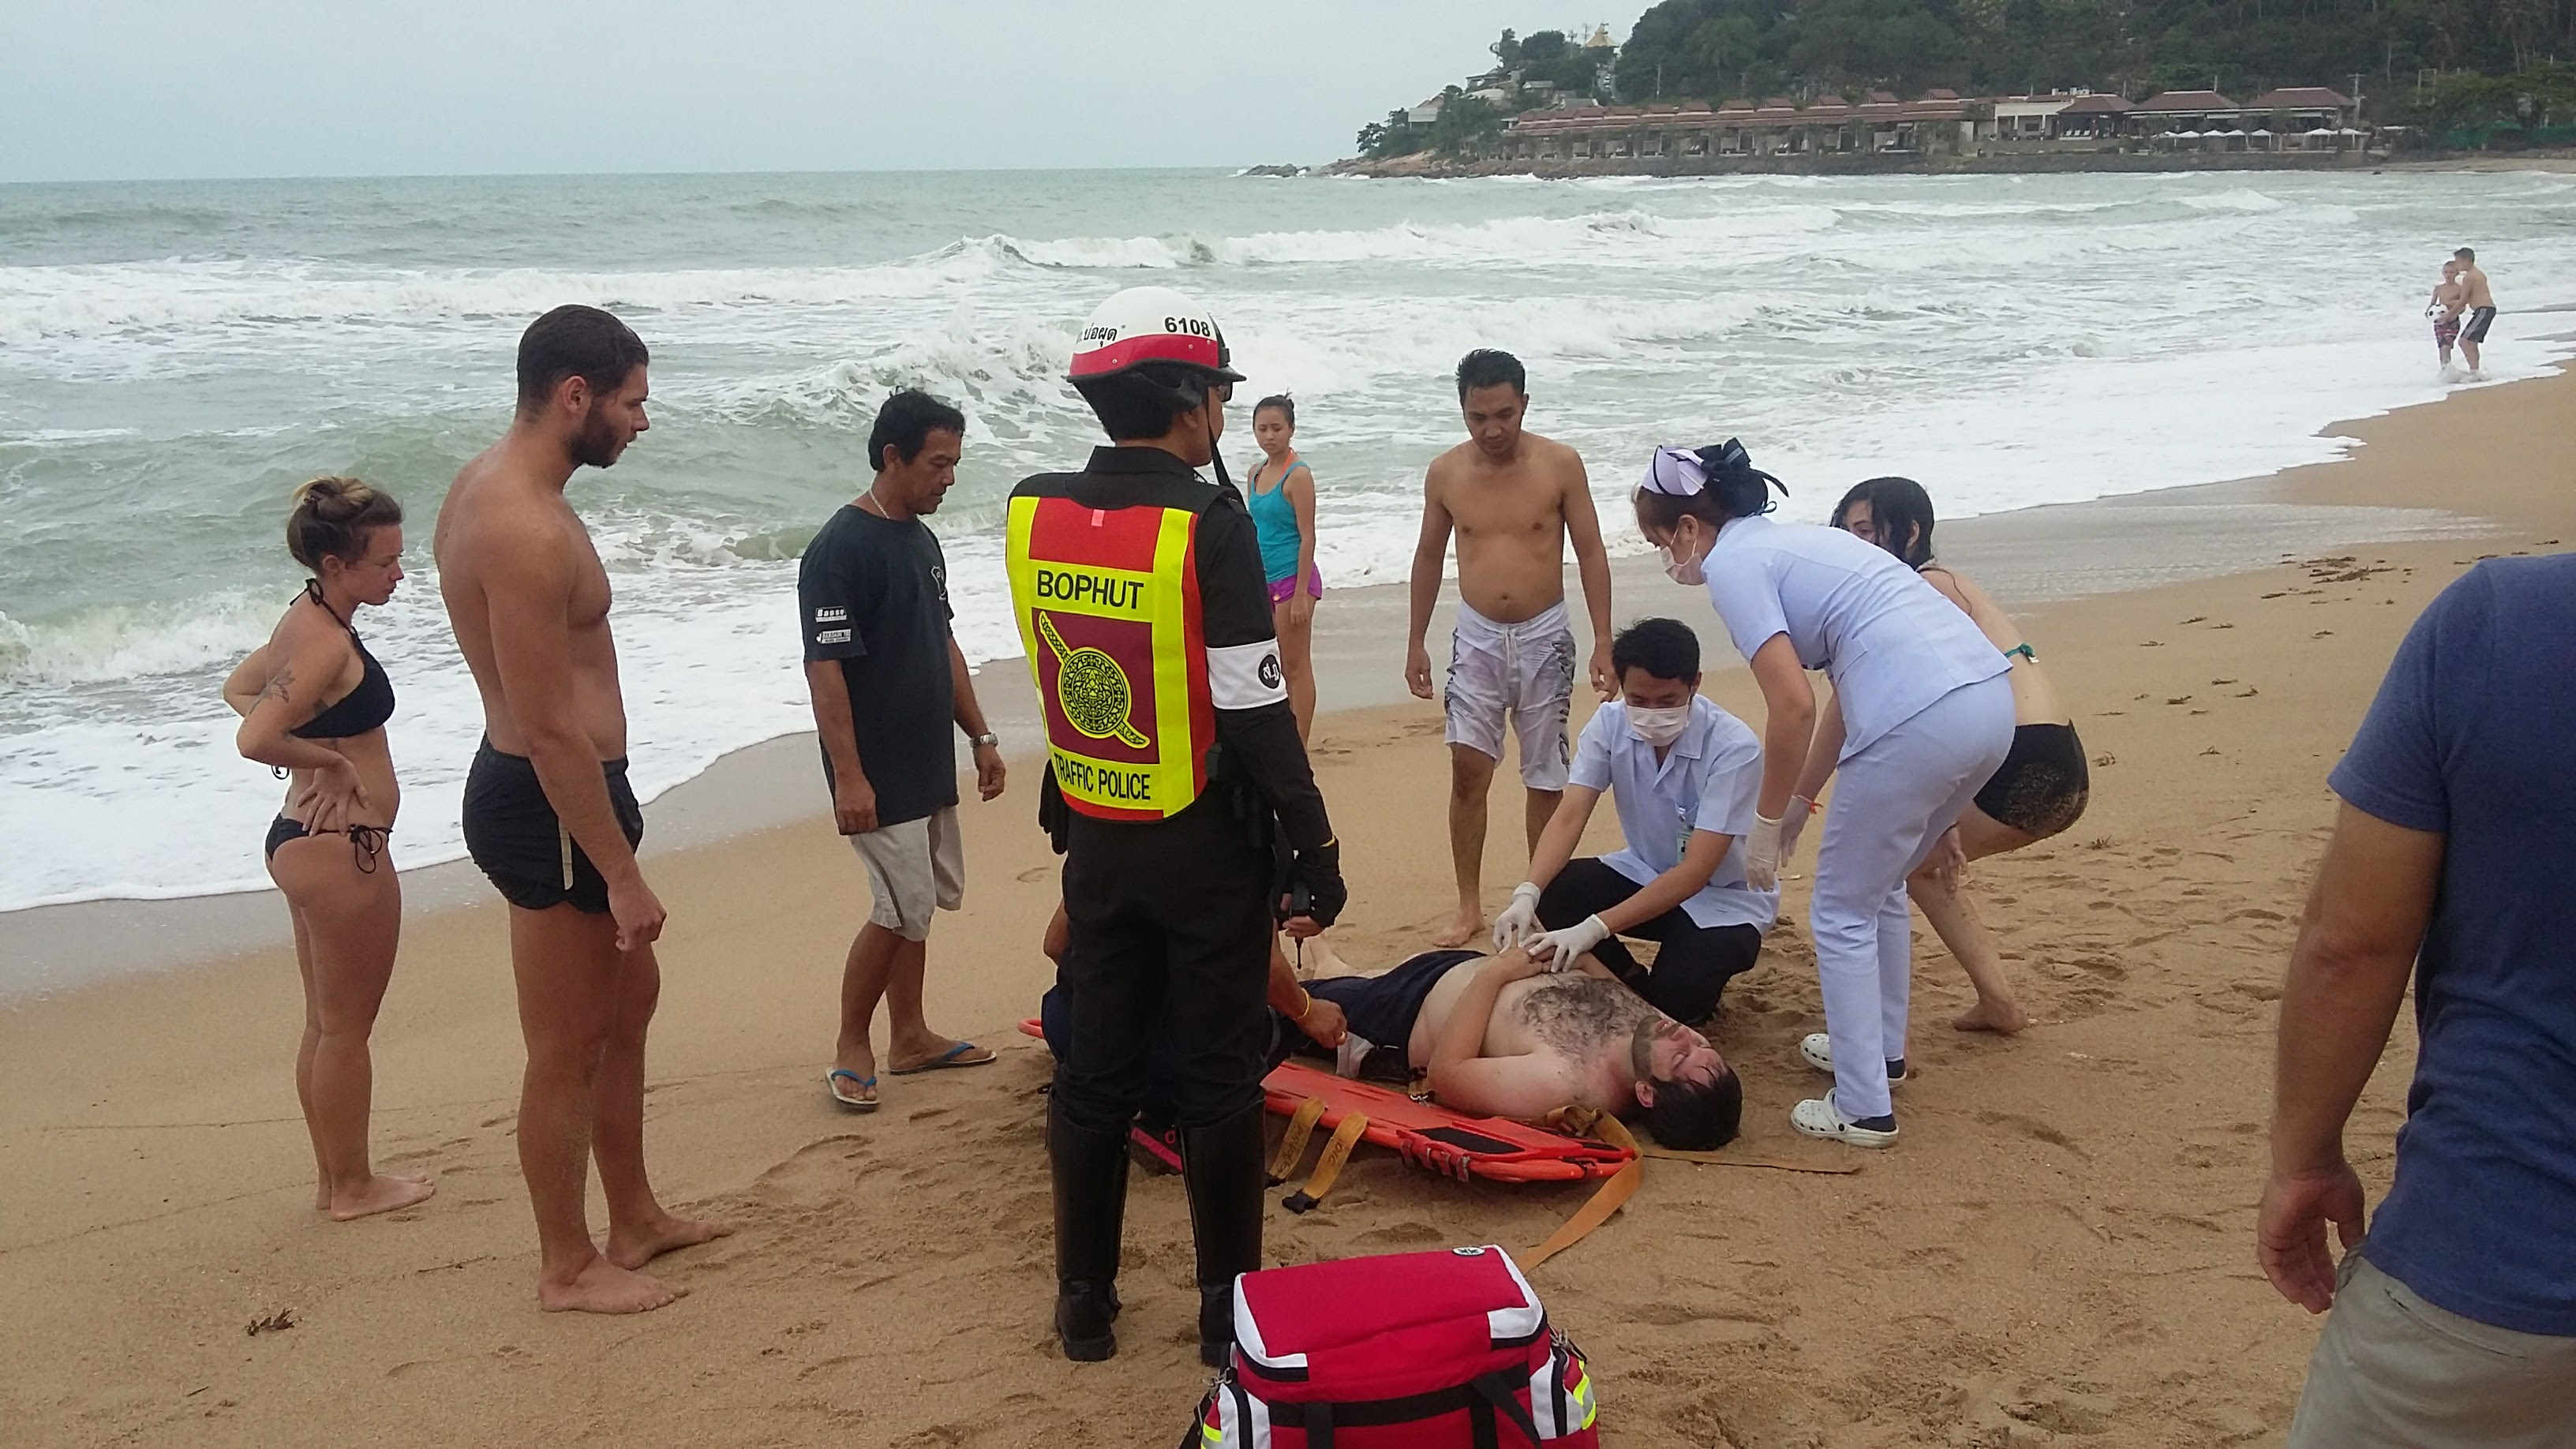 Samui Expats Rescue Tourists from Drowning | Samui Times